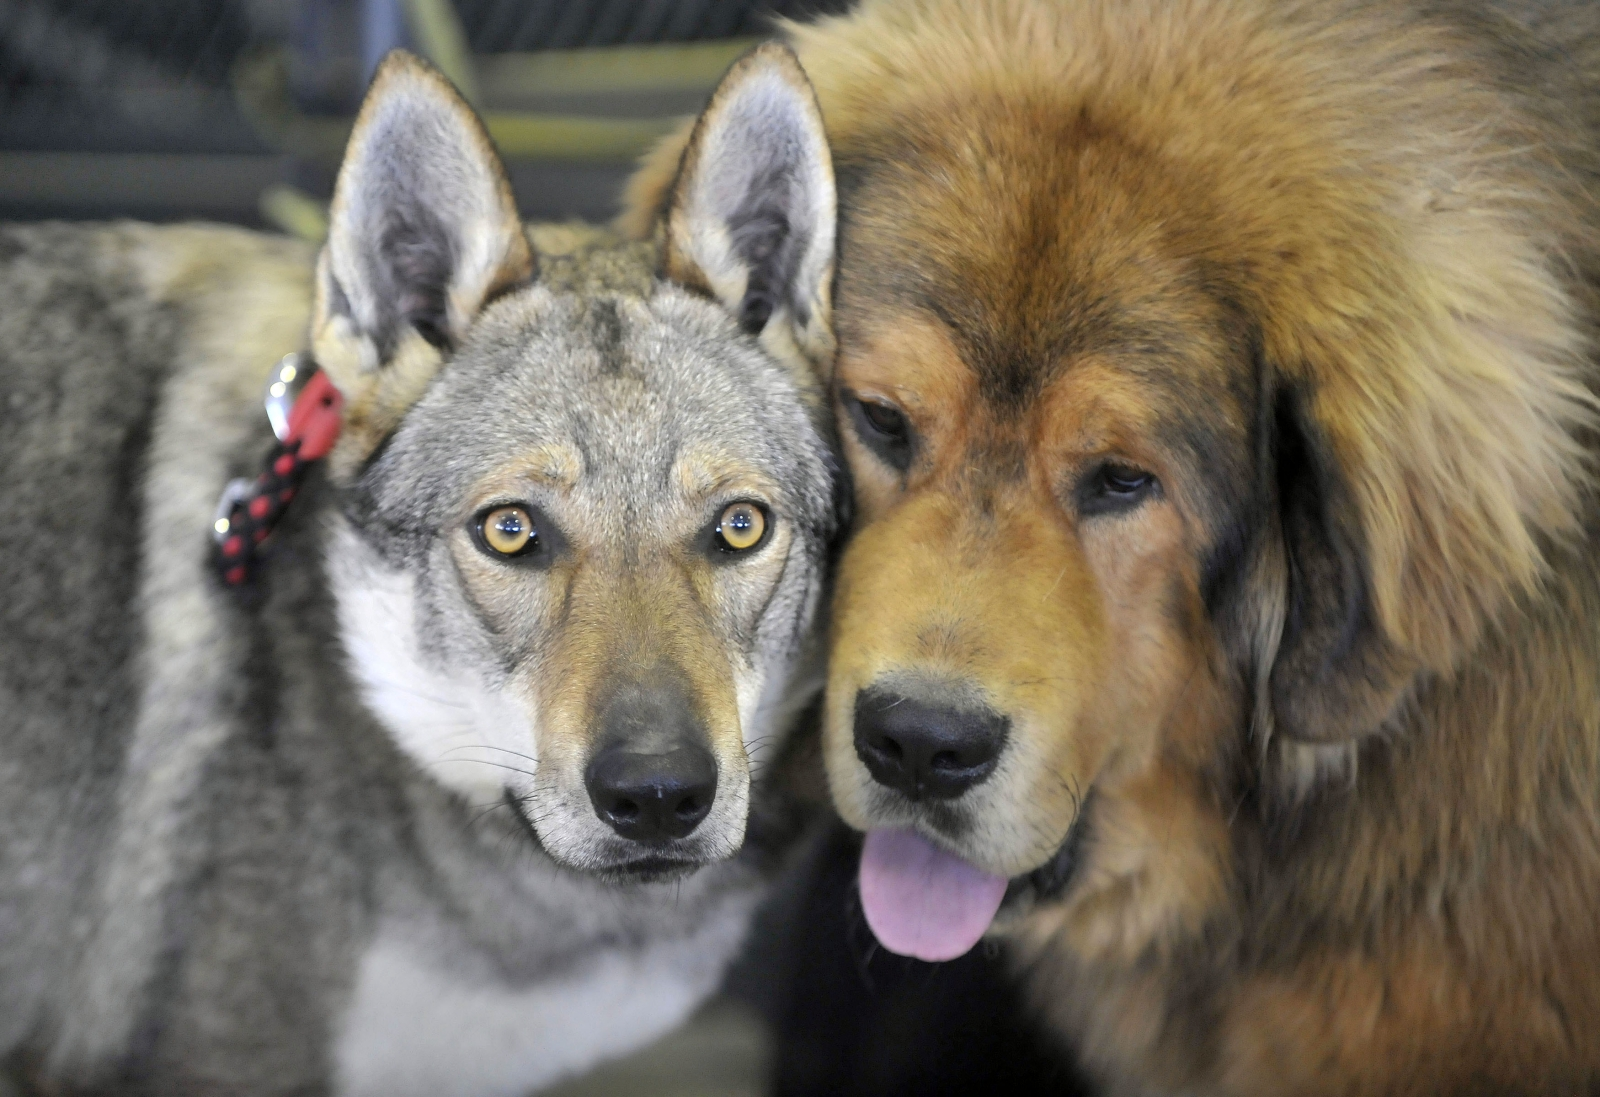 Czechoslovakian Wolfdog and a Tibetan Mastiff